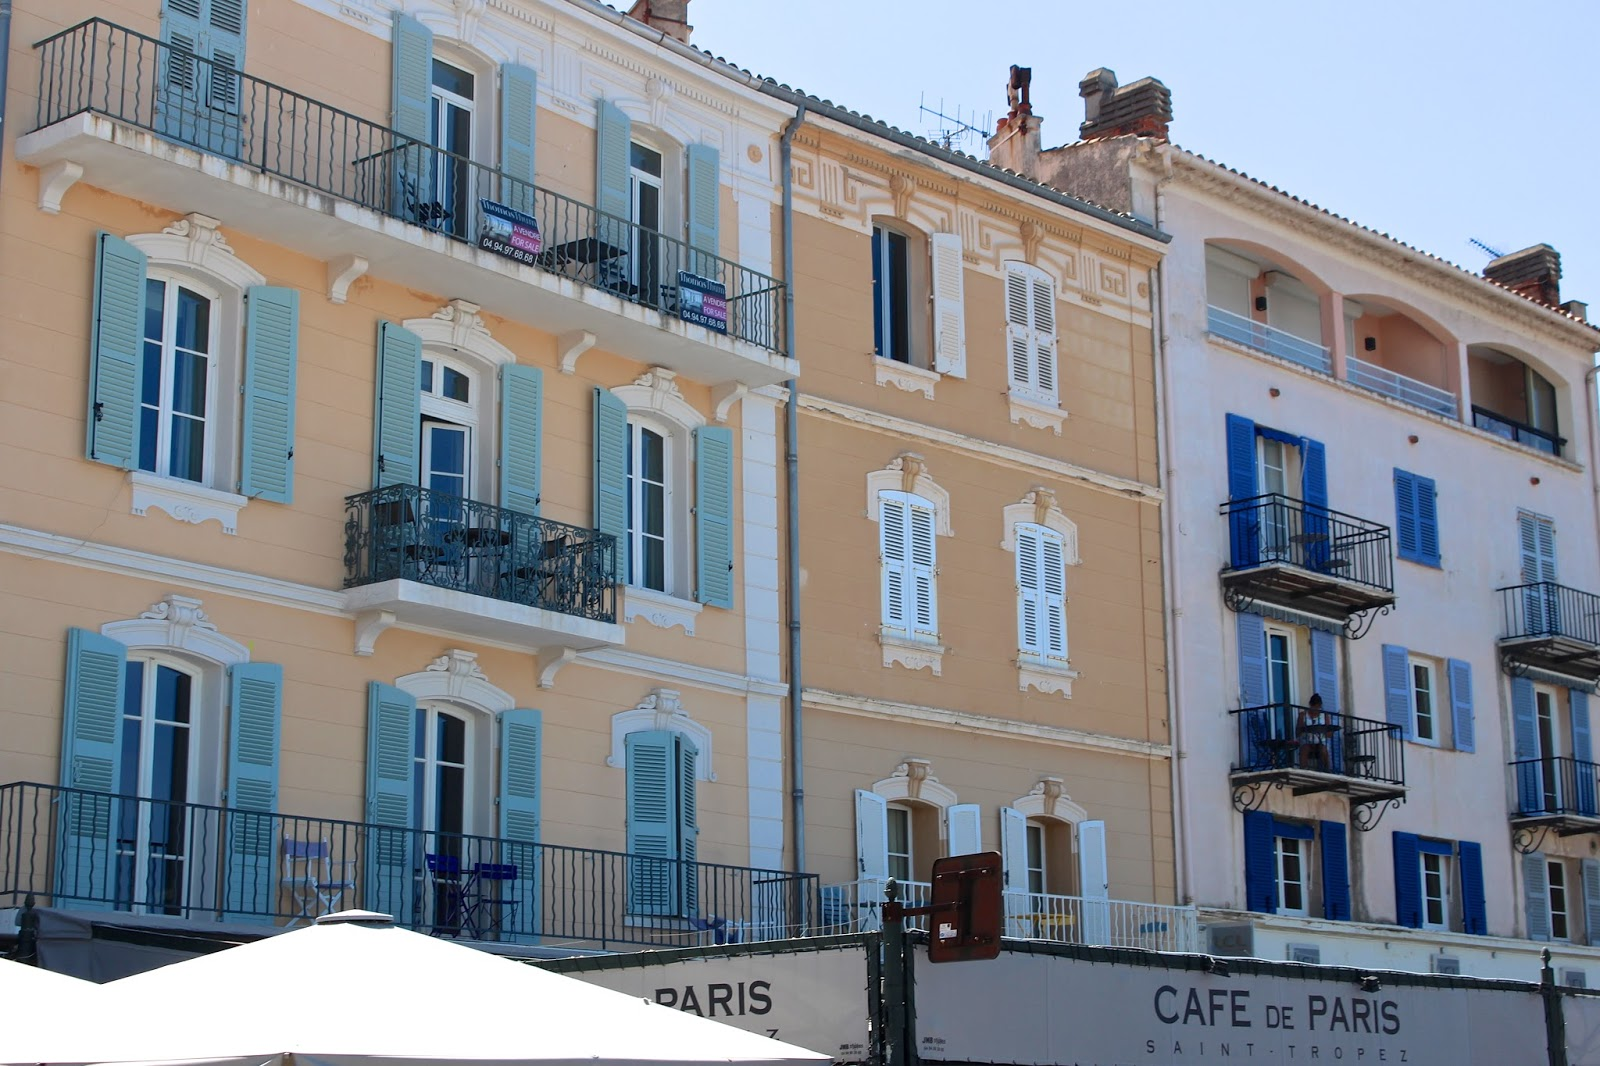 The pastel coloured buildings of Saint Tropez